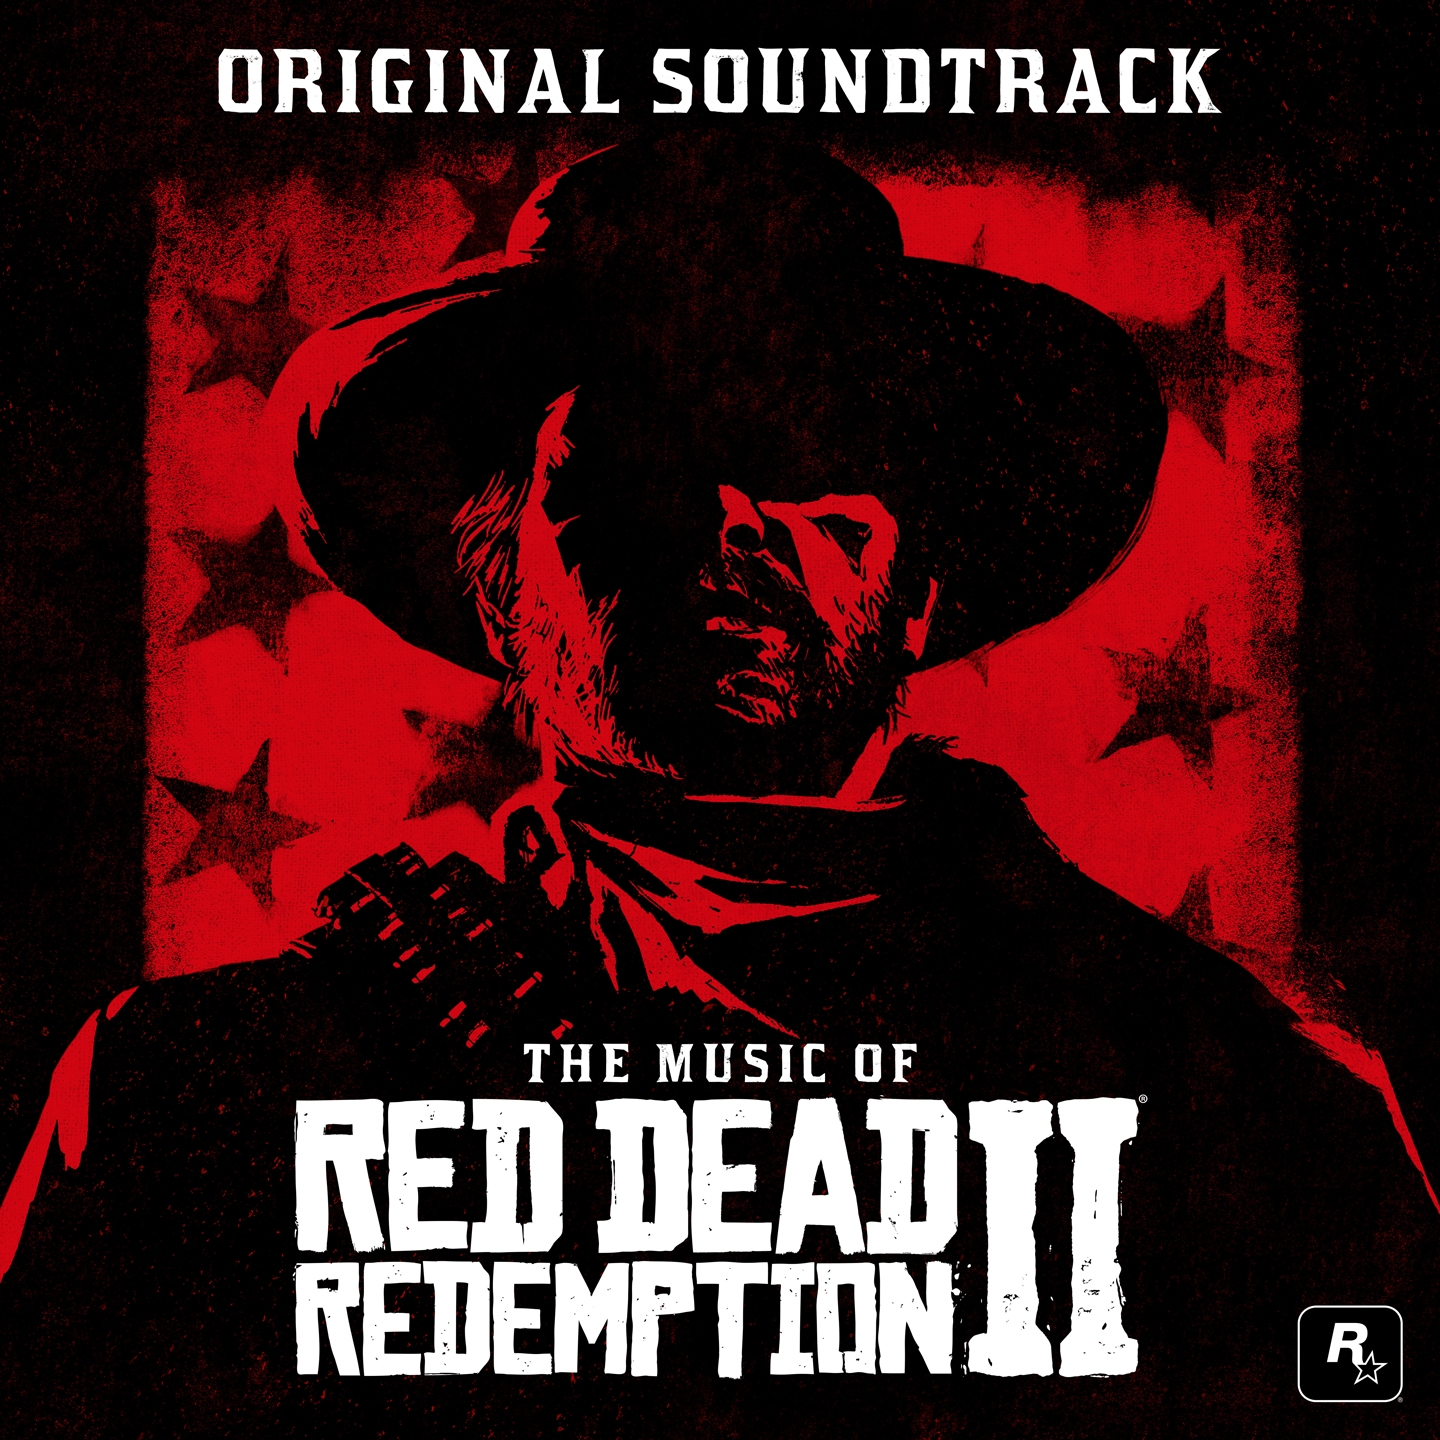 The Music of Red Dead Redemption 2: Original Soundtrack Out Now ...